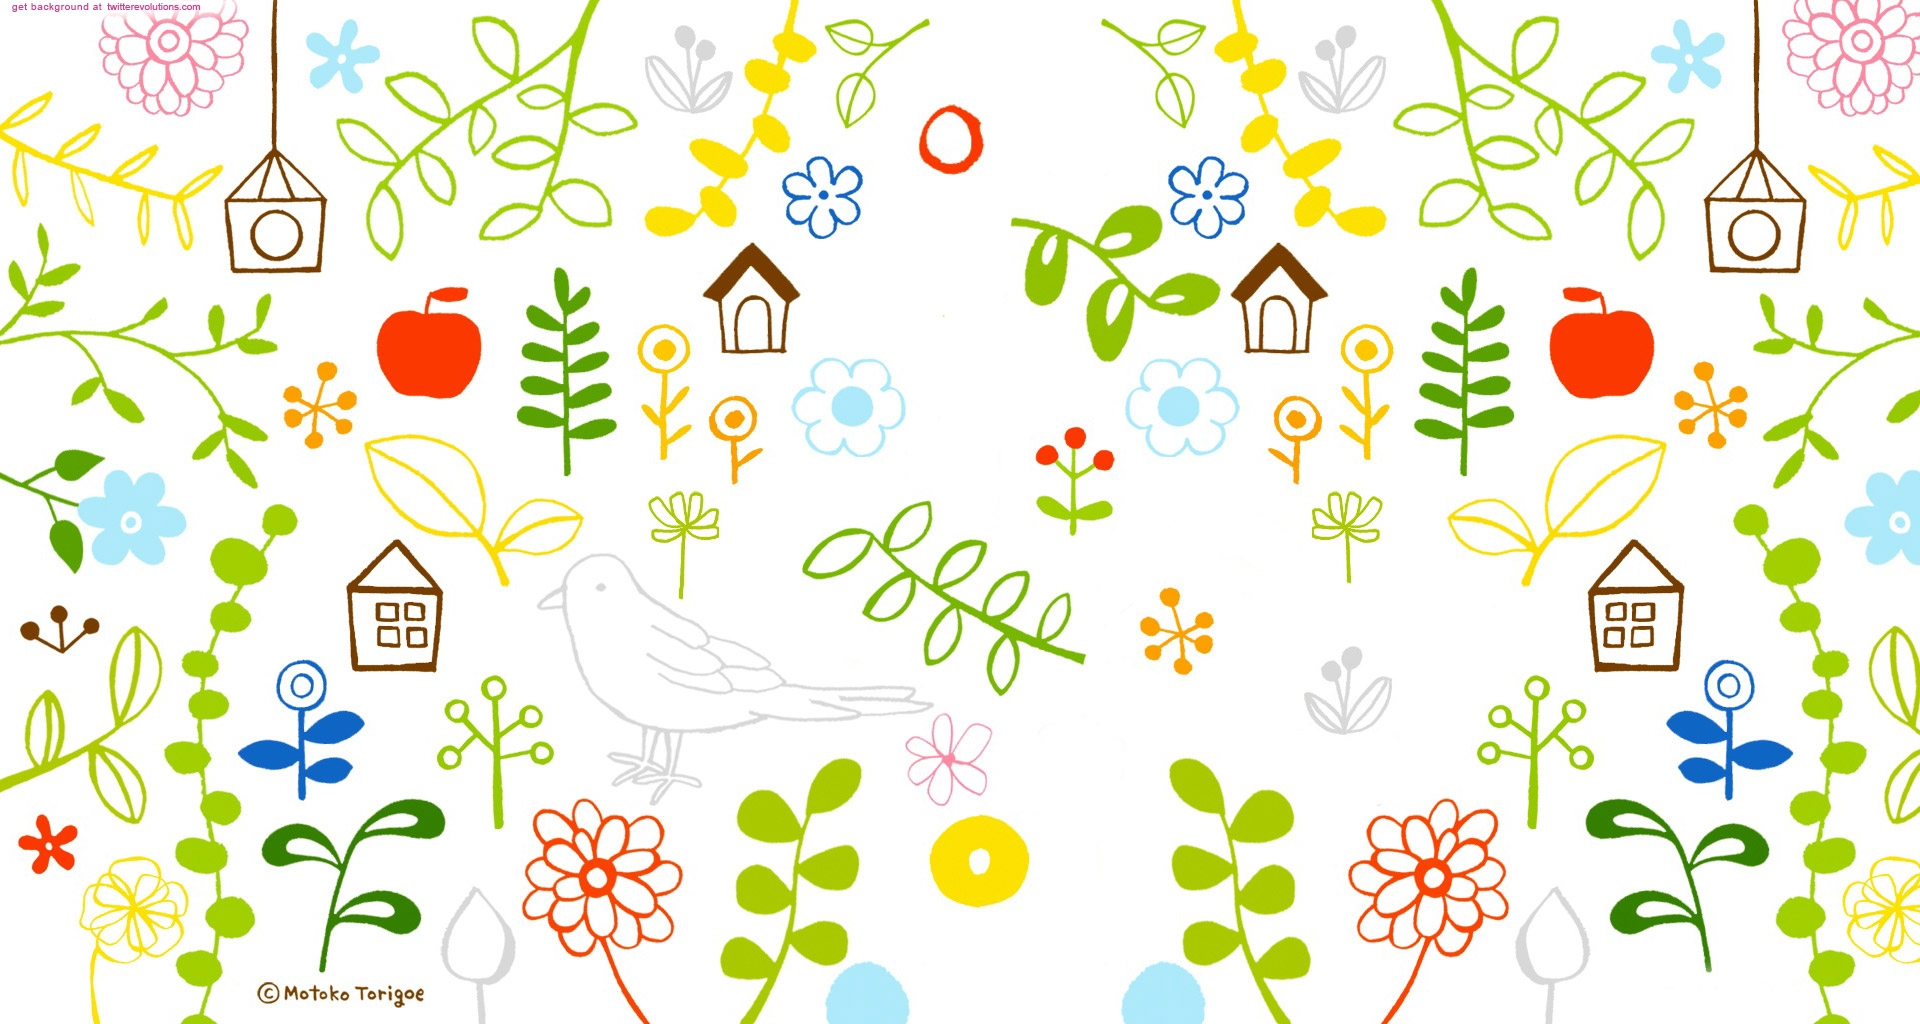 background-pattern-for-twitter-Download-Cute-For-Twitter-afari-with-regard-wallpaper-wp3602924